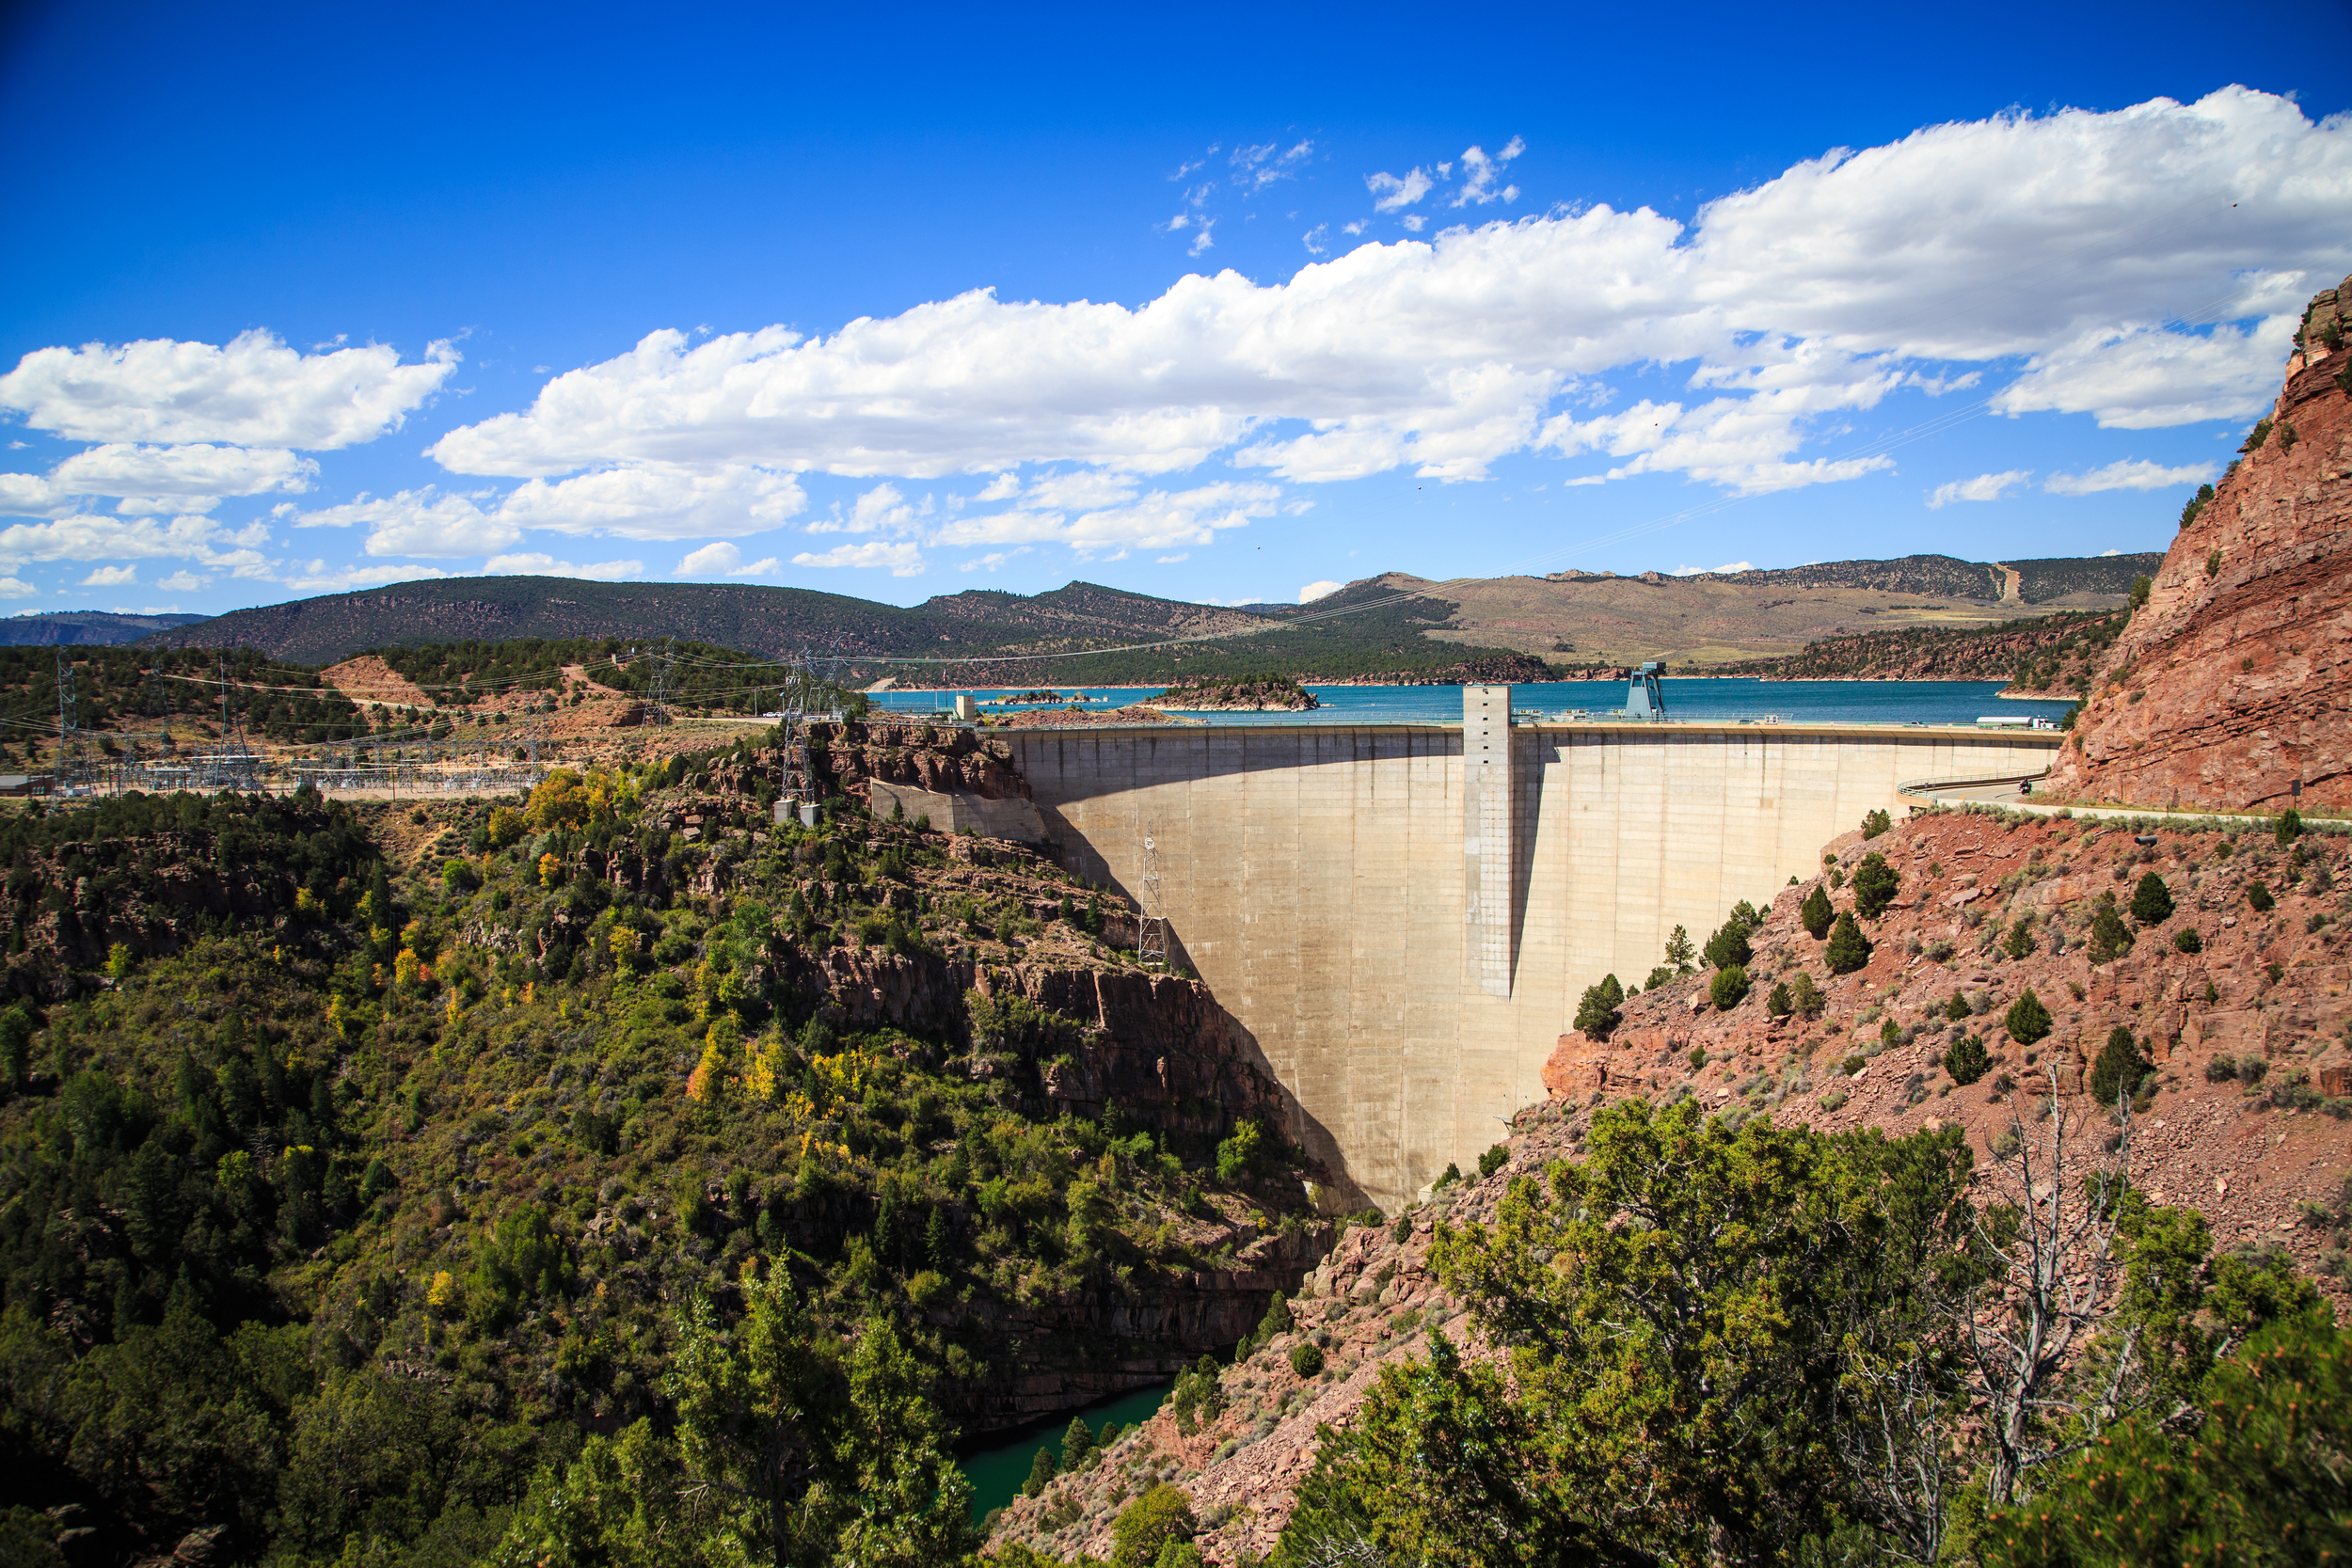 Flaming Gorge Dam.